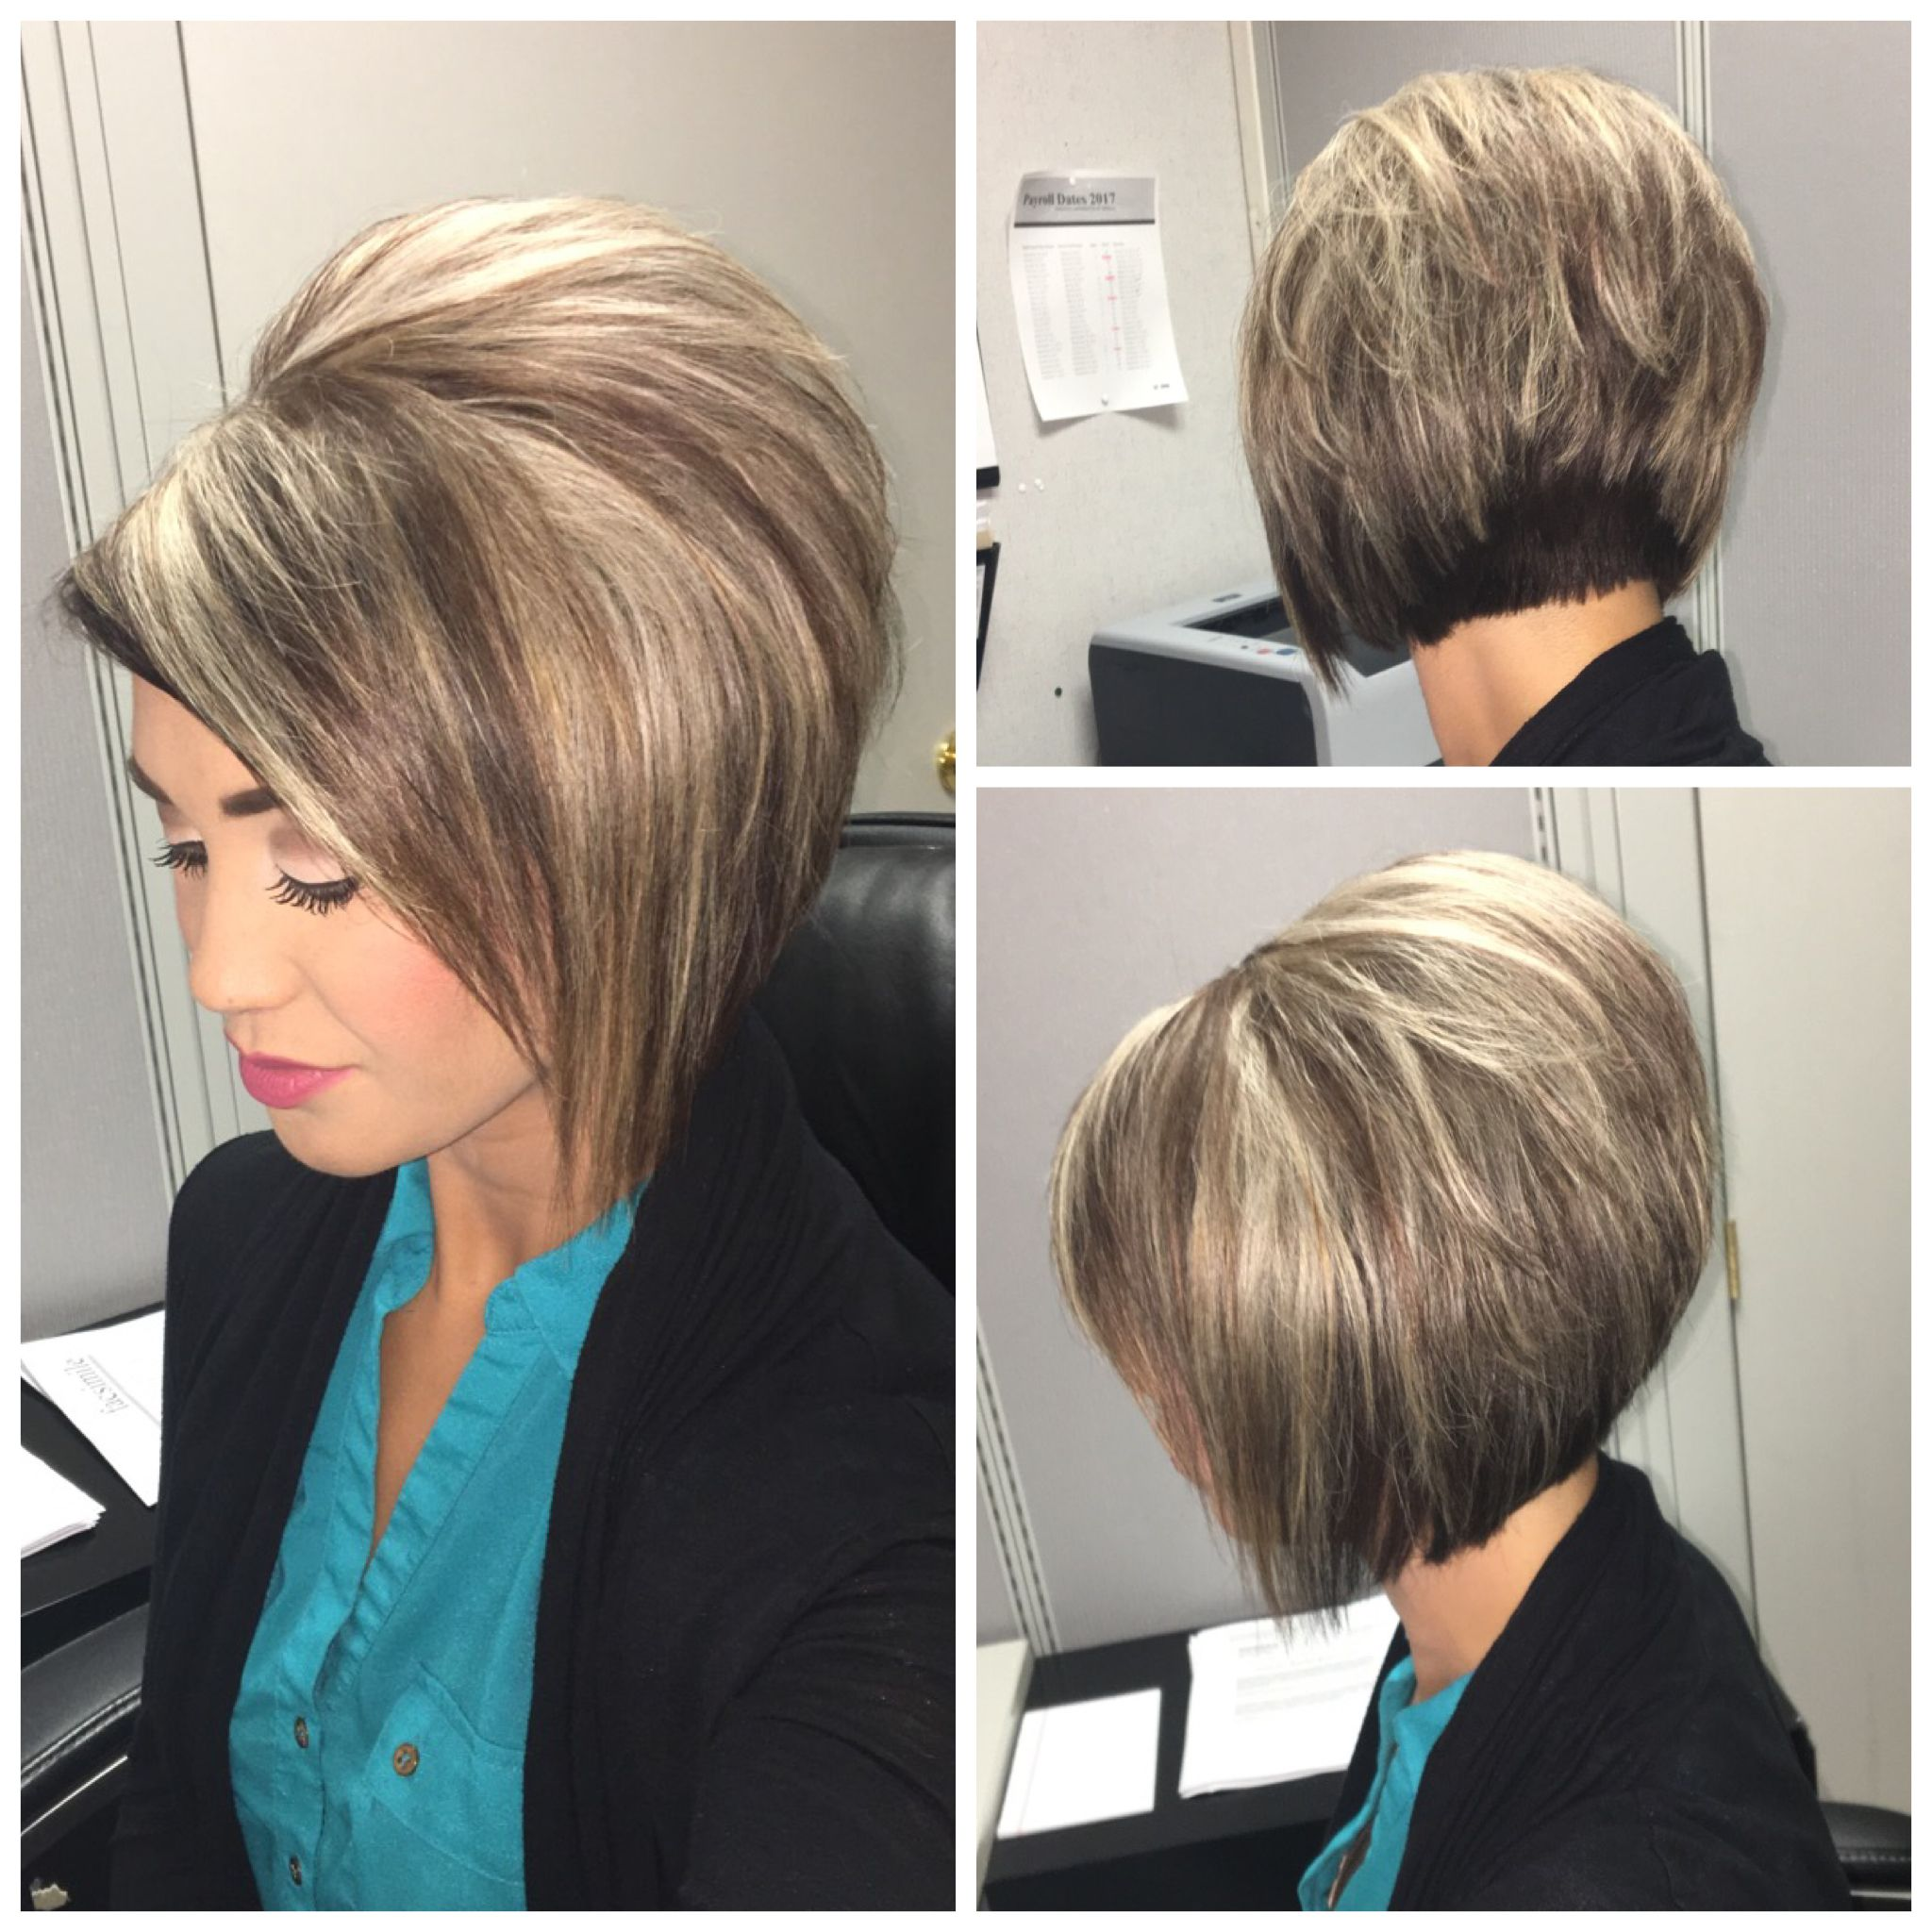 Stacked Bob Hairstyle Impressive Stacked Bob Haircut With Blonde Highlights On Dark Hair  Hair